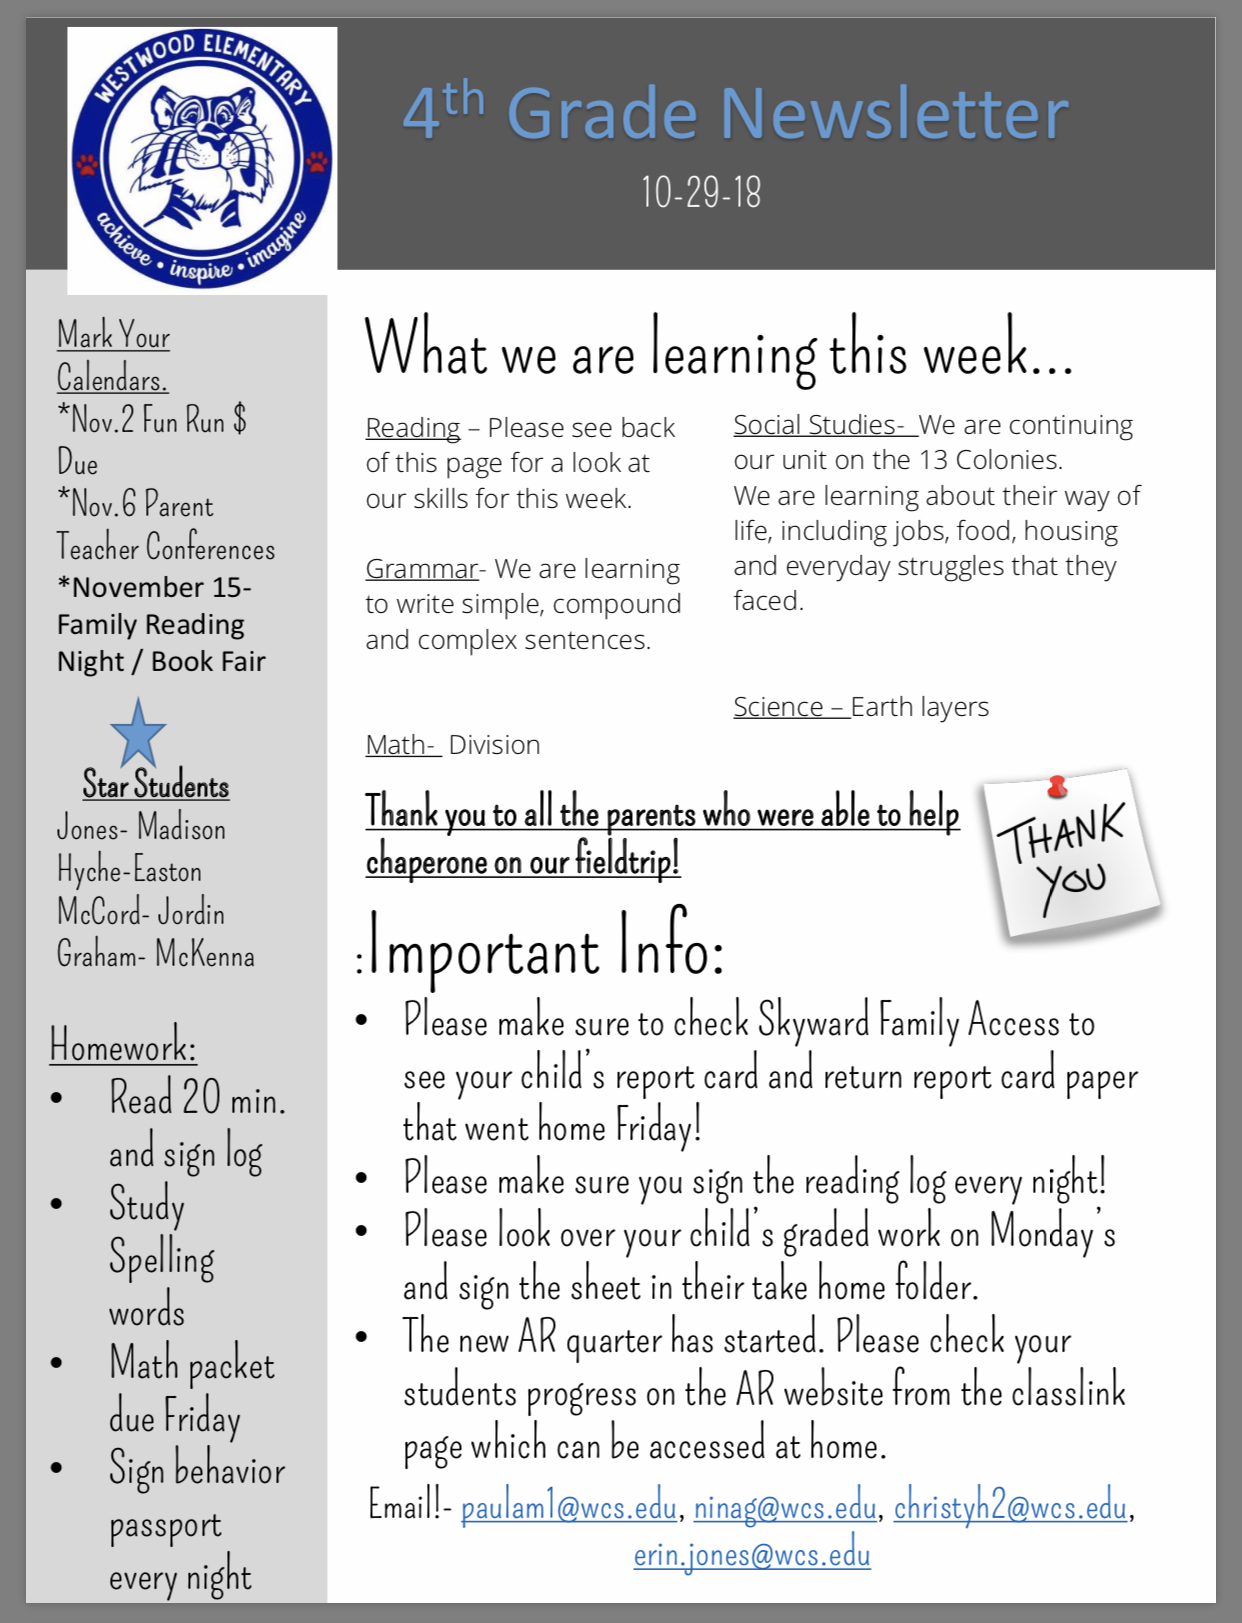 4th Grade Newsletter pepper copy in office